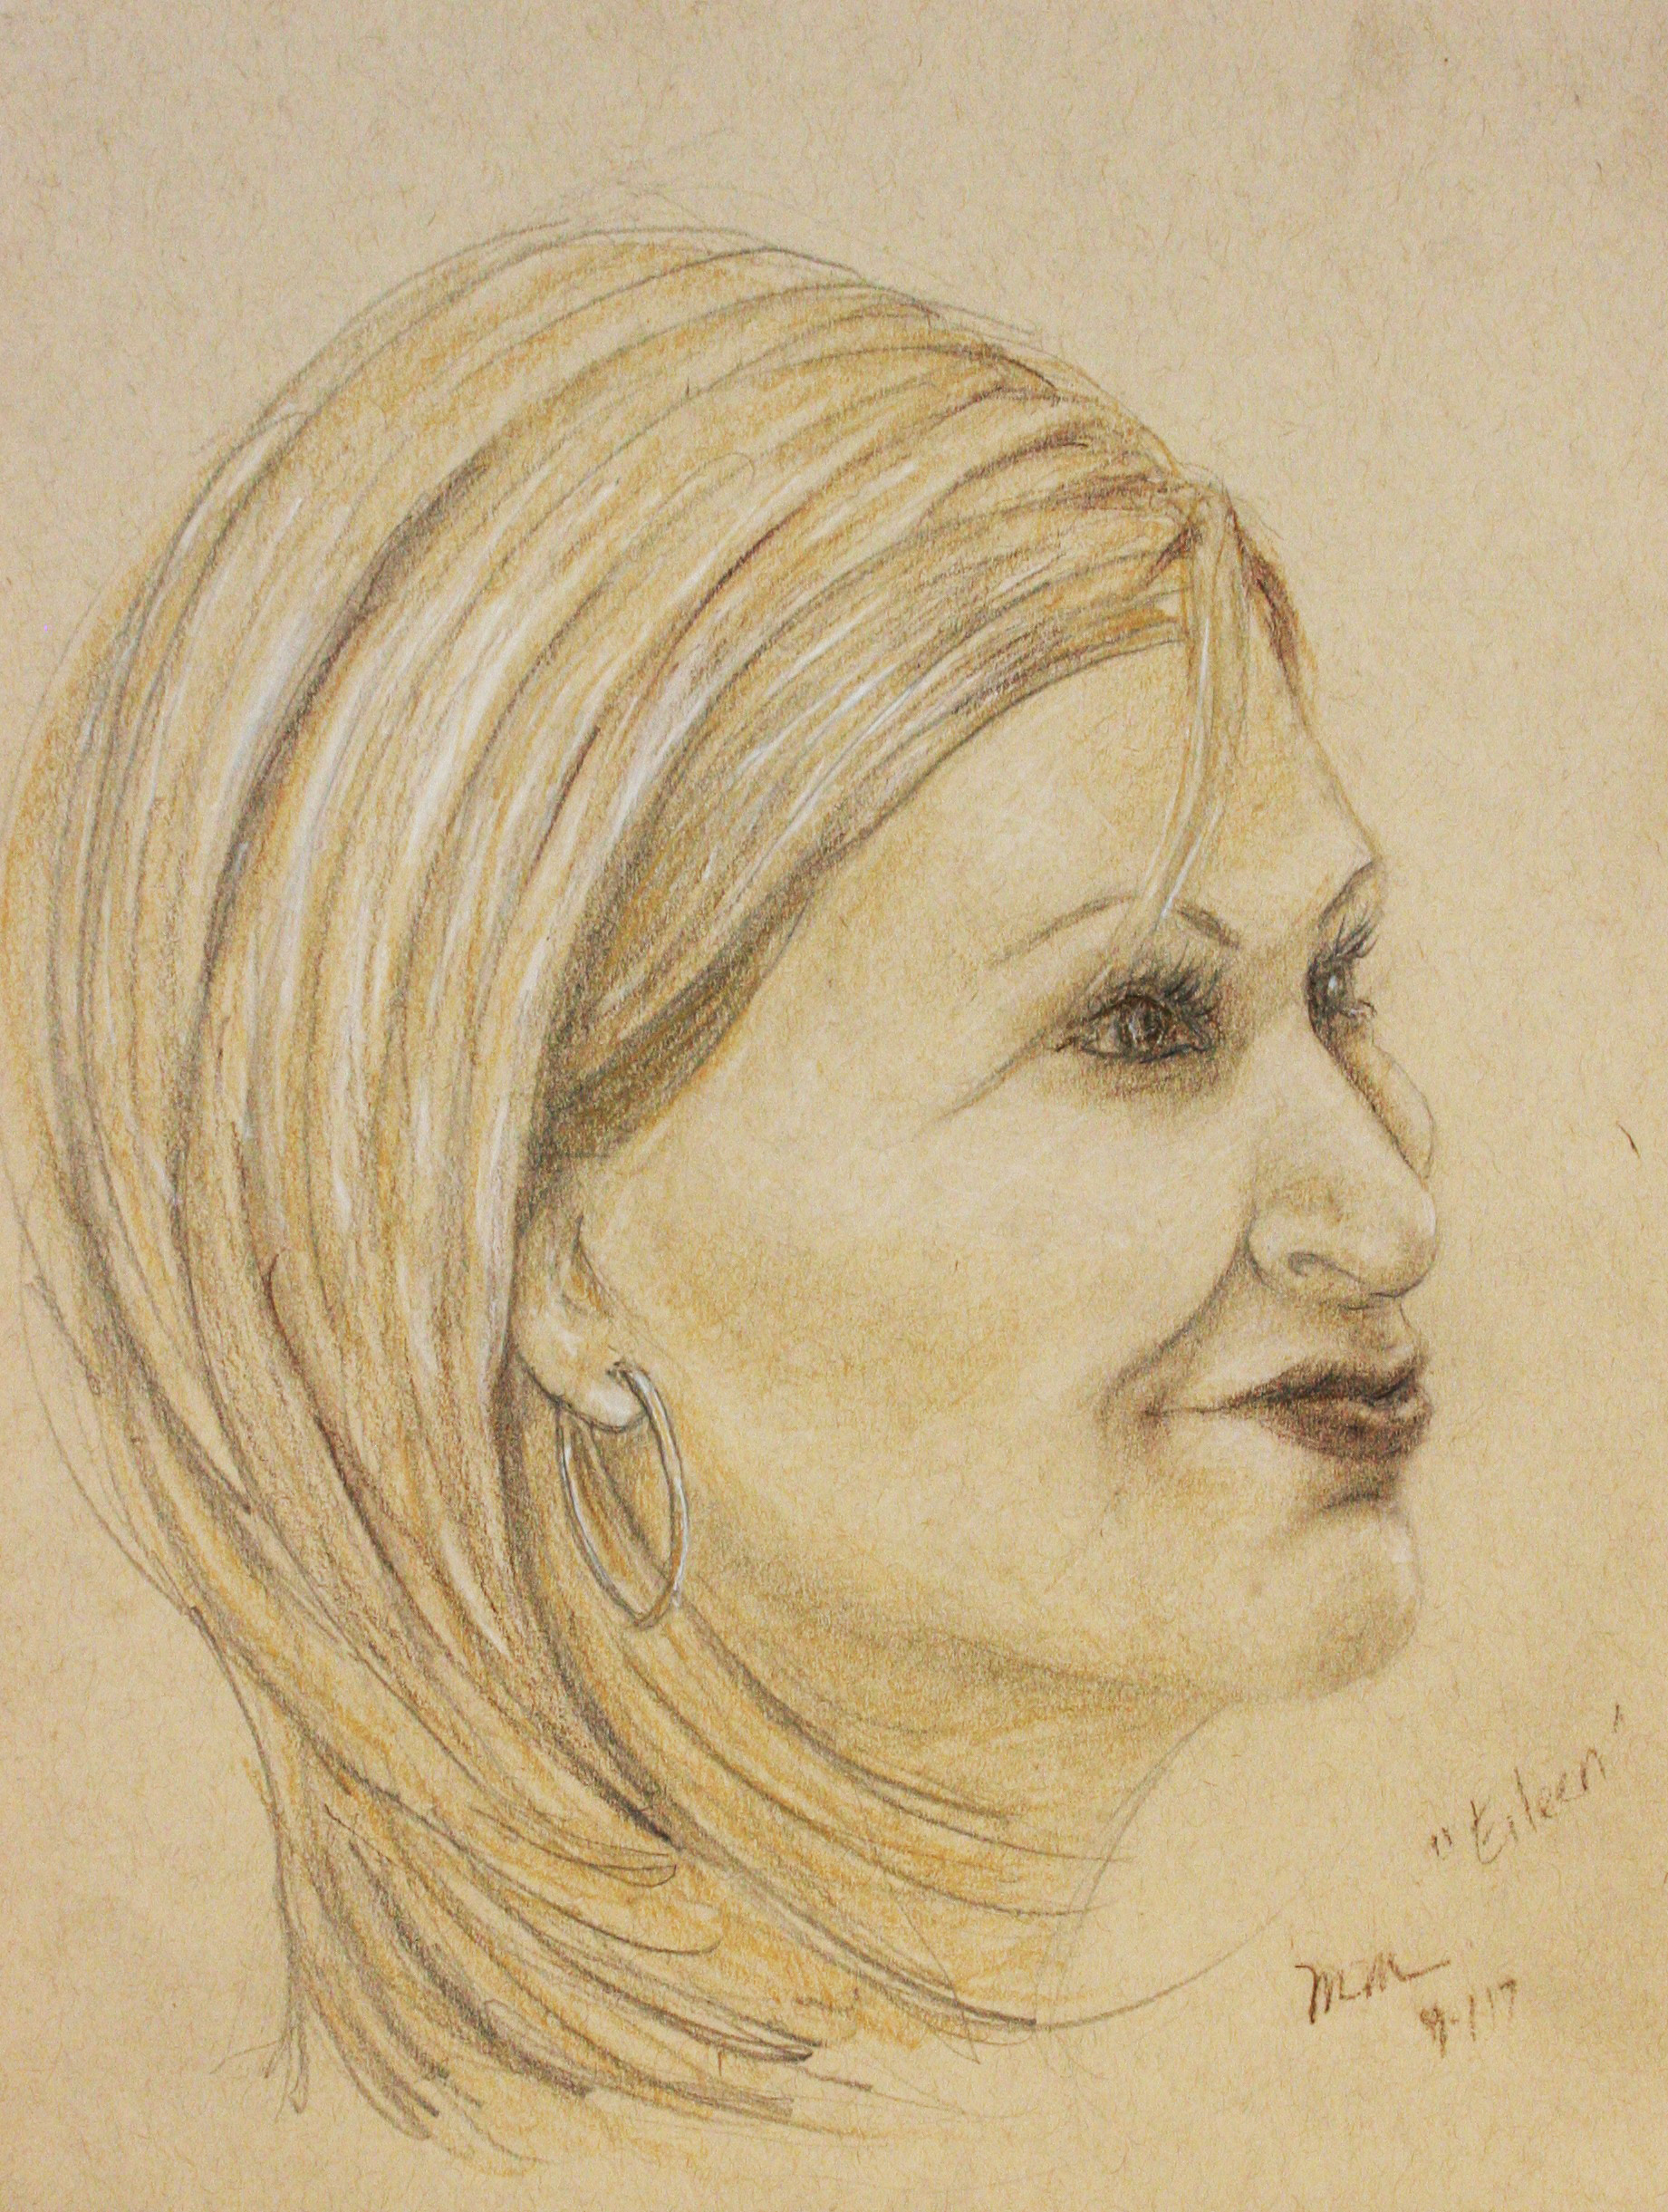 Mary Mylett did this hour drawing.